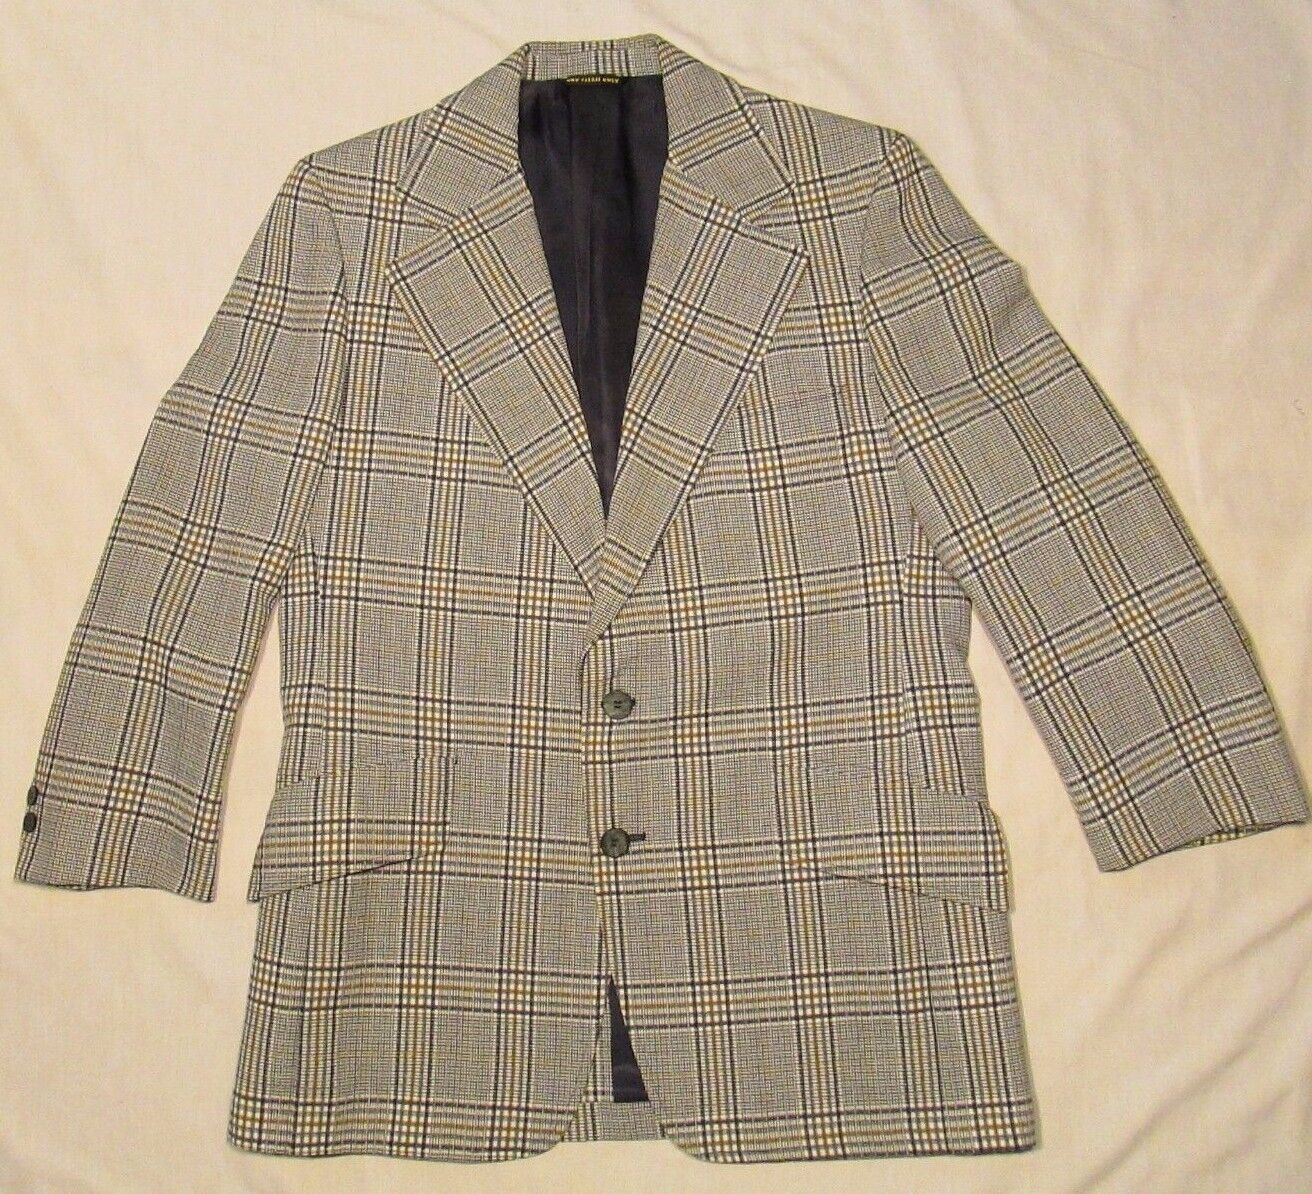 40R BROOKS BROTHERS Curlees Suit 1970's Weiß PLAID Two Button Polyester 36x25